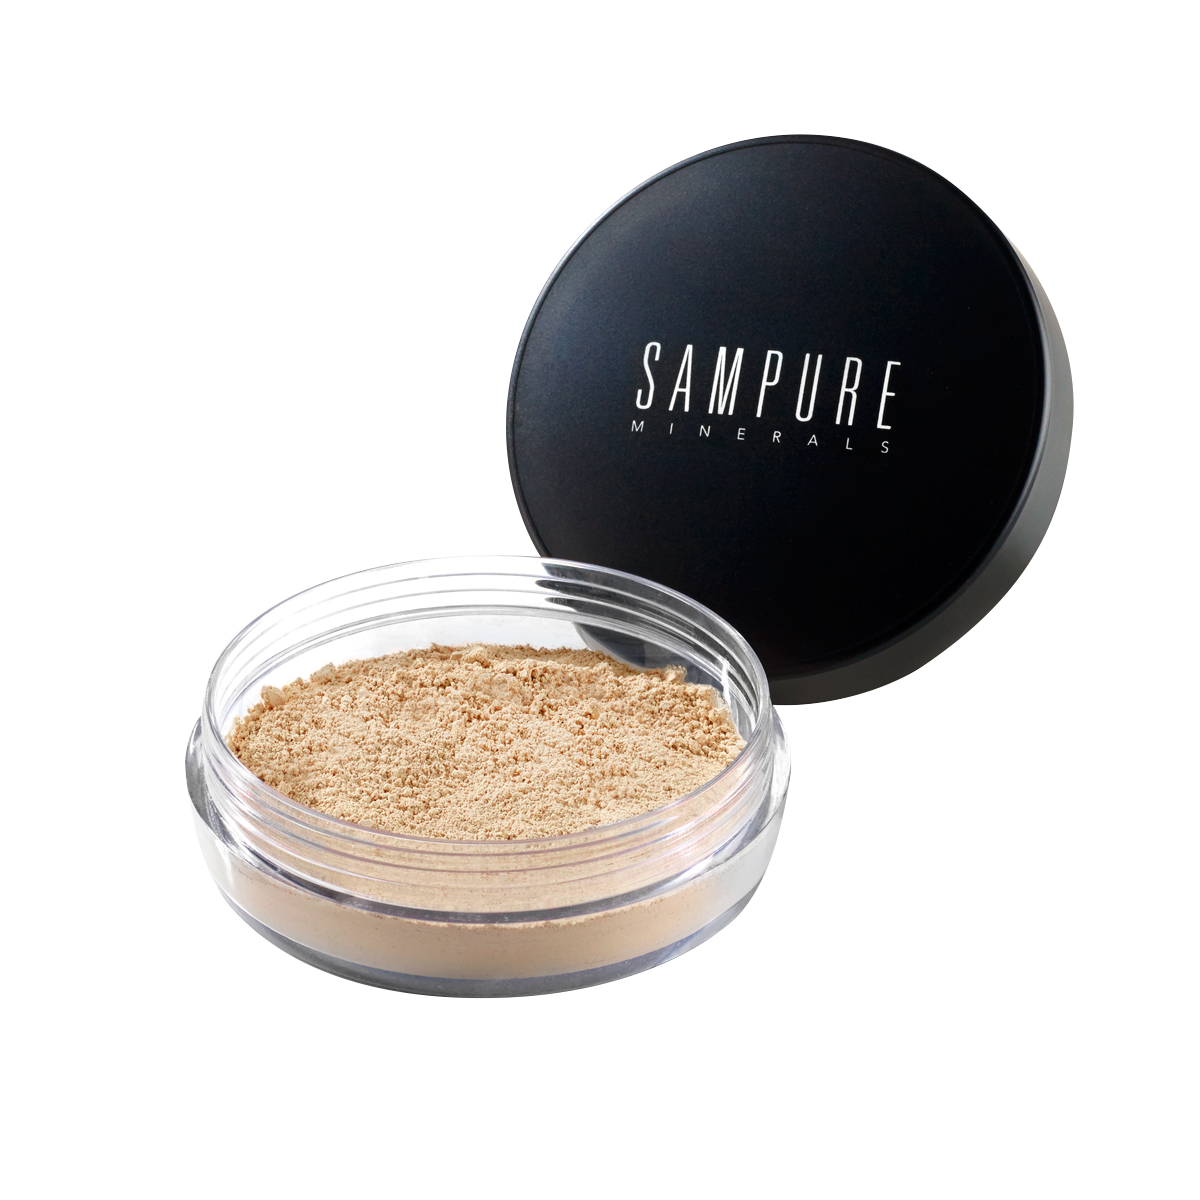 Sampure Minerals Instant Glow Loose Mineral Foundation Sand (halal/vegan)